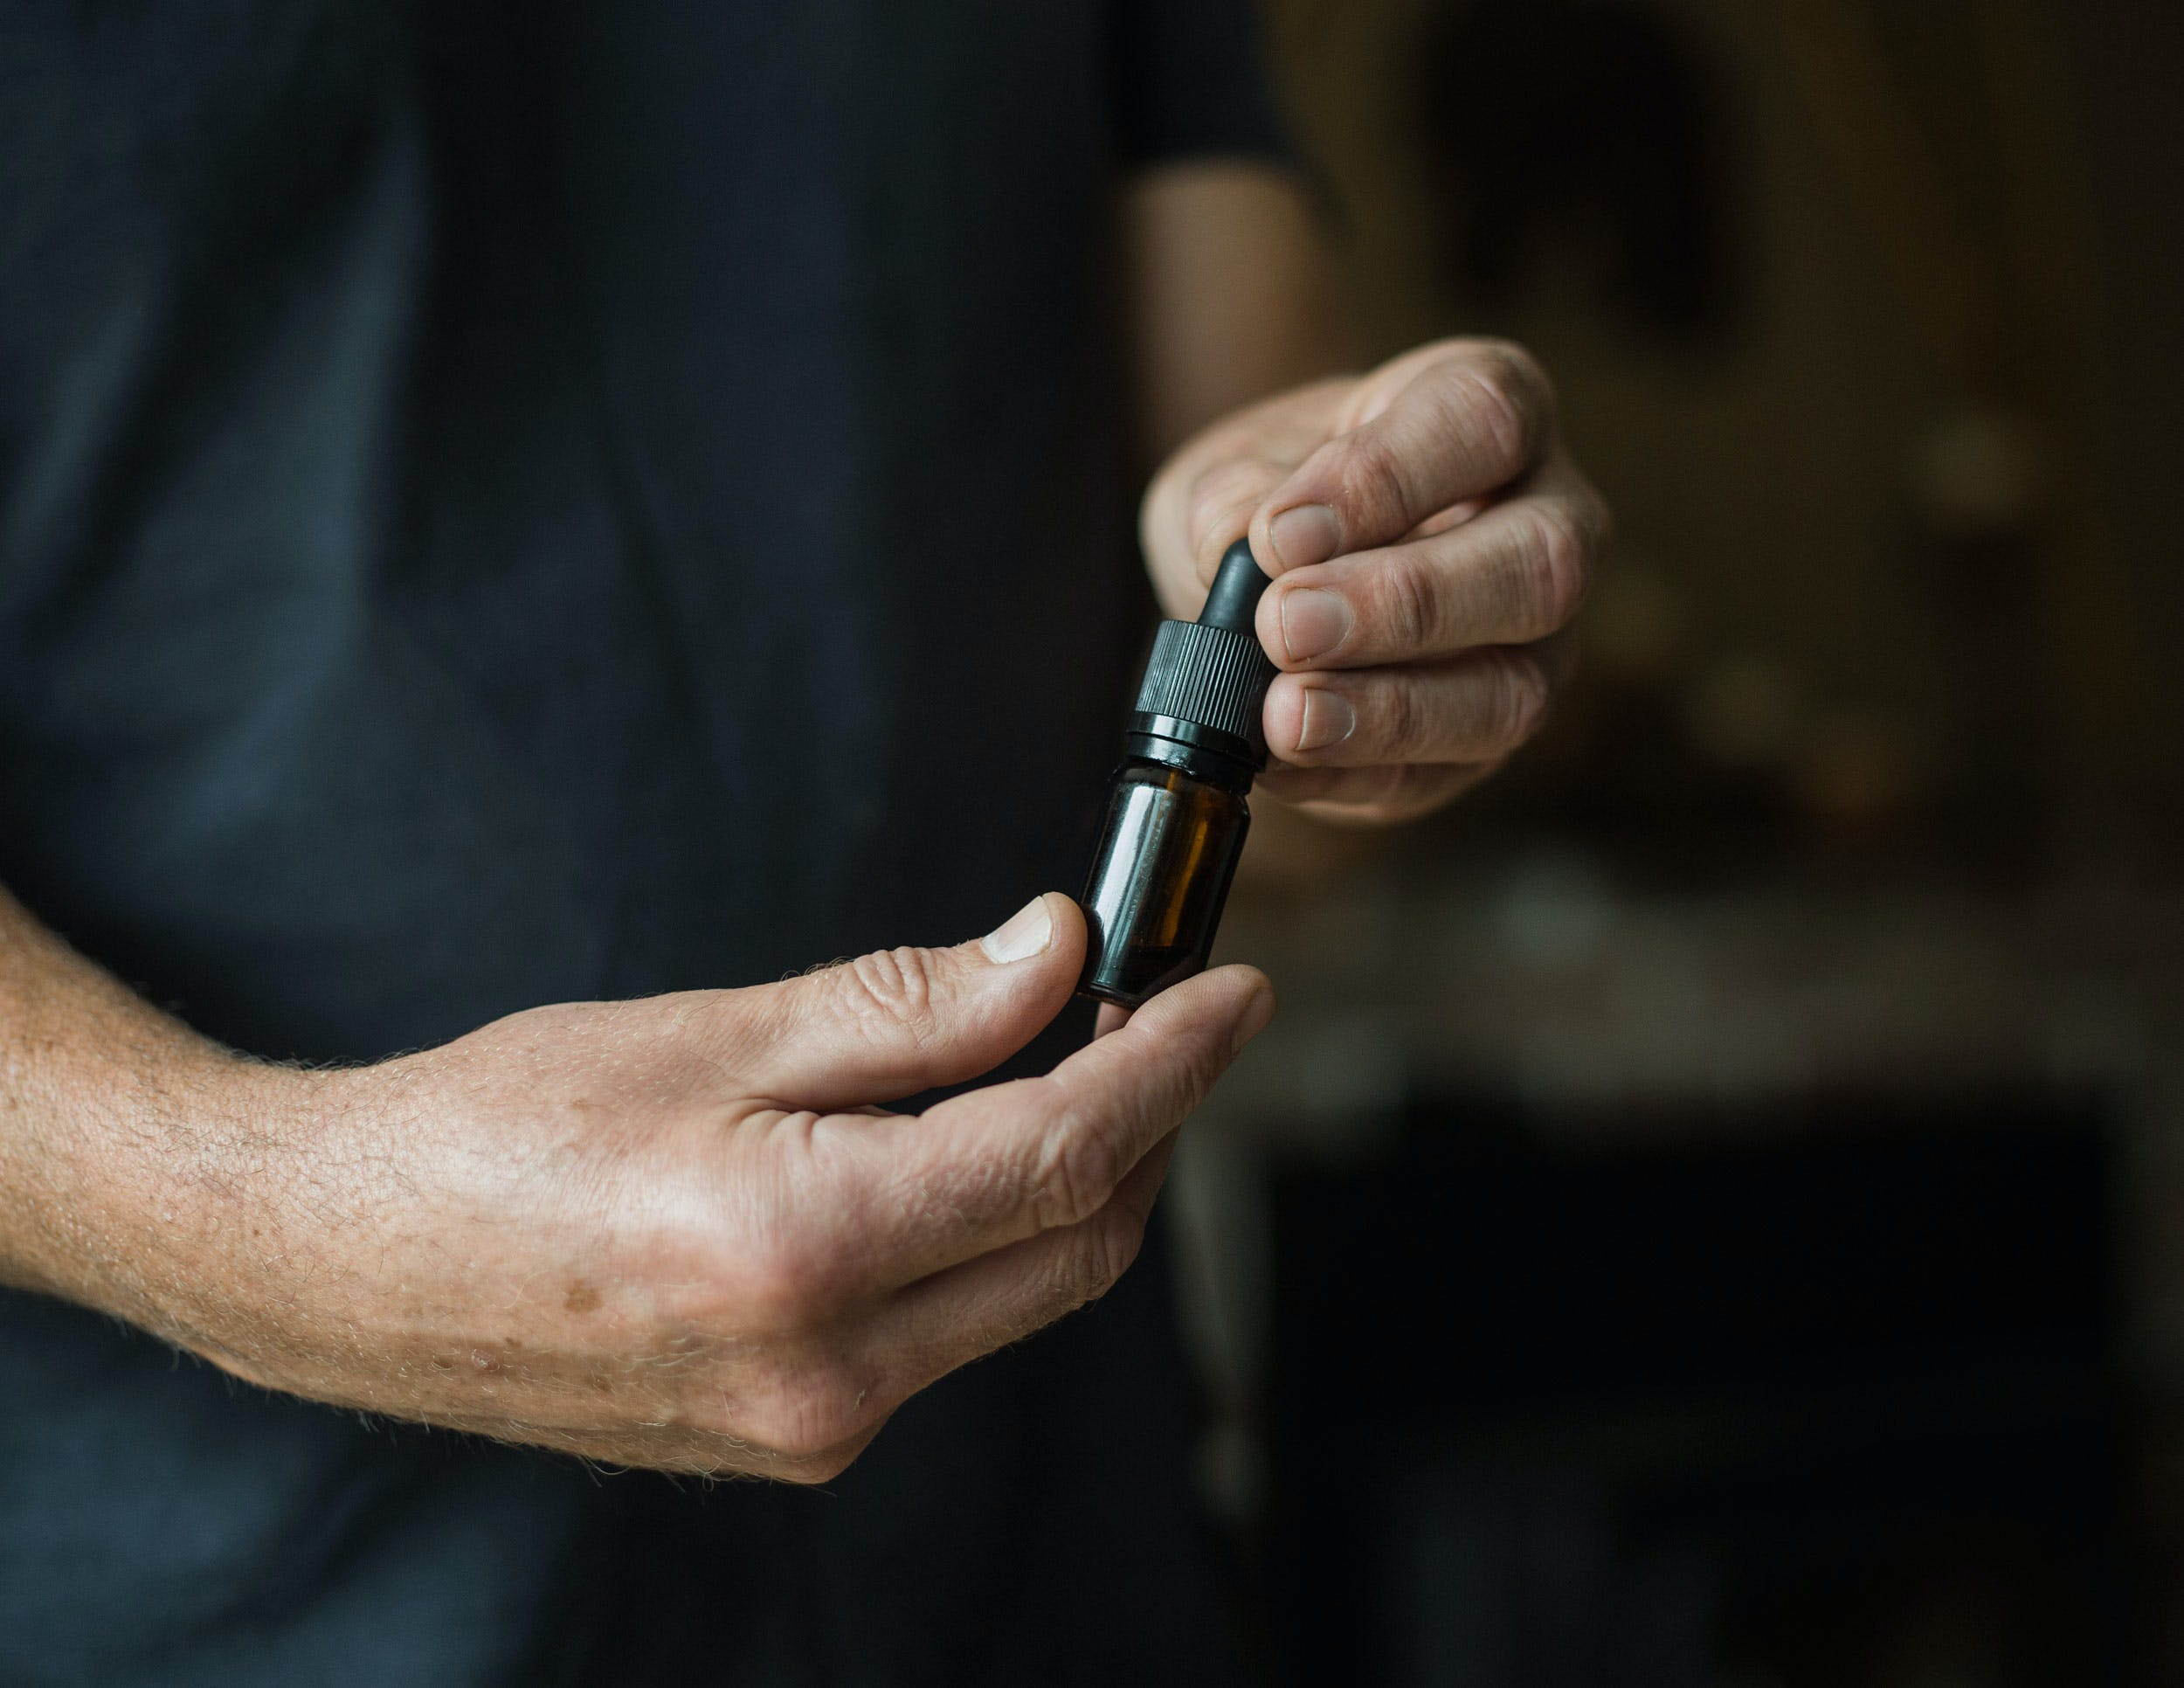 tinctures are among The 5 Best Alternatives to Smoking Weed For Cannabis Users. Here, a man is shown w/ a tincture